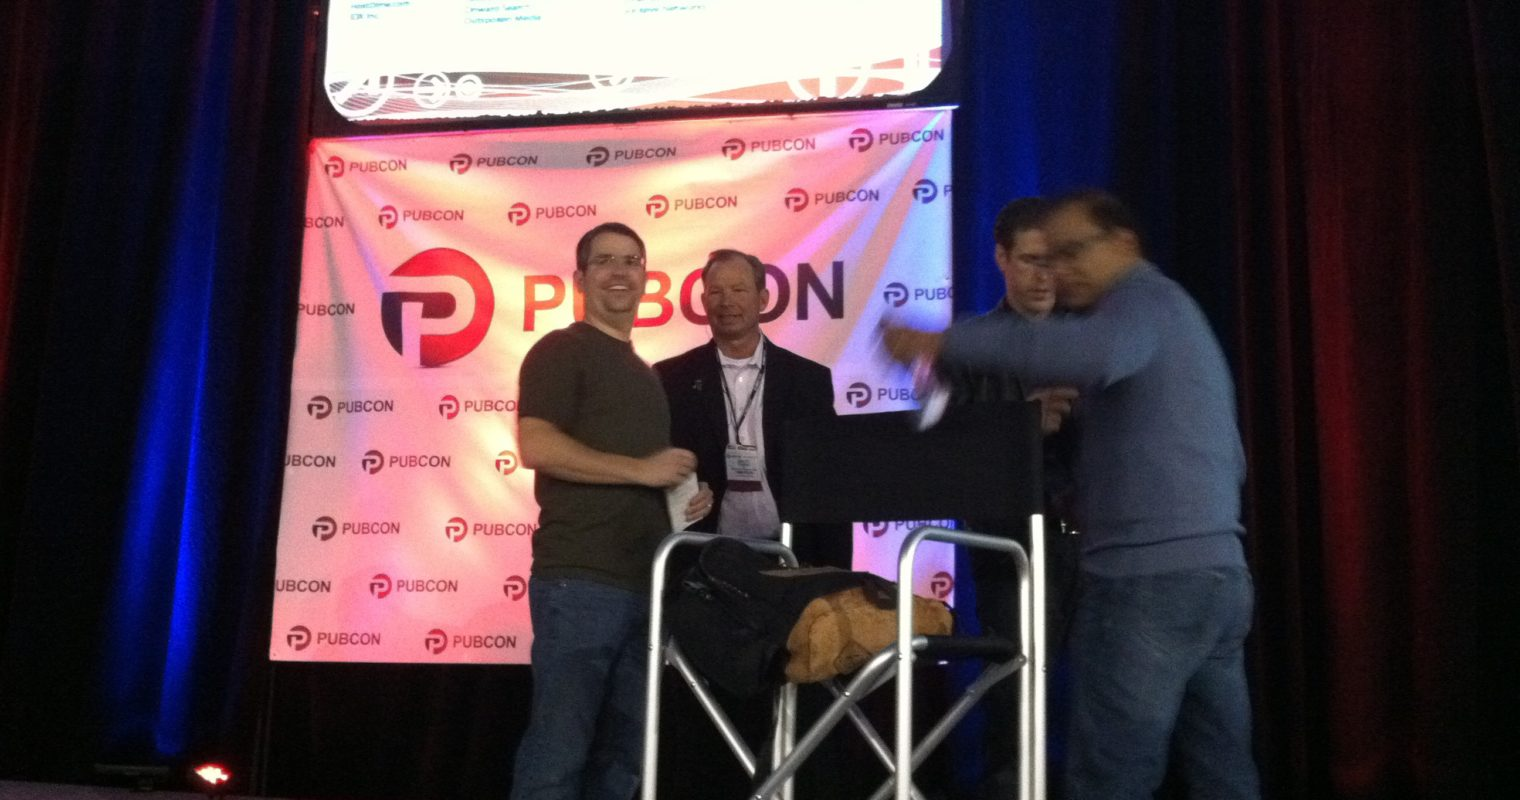 #pubcon State of the Index with Matt Cutts and Amit Singhal